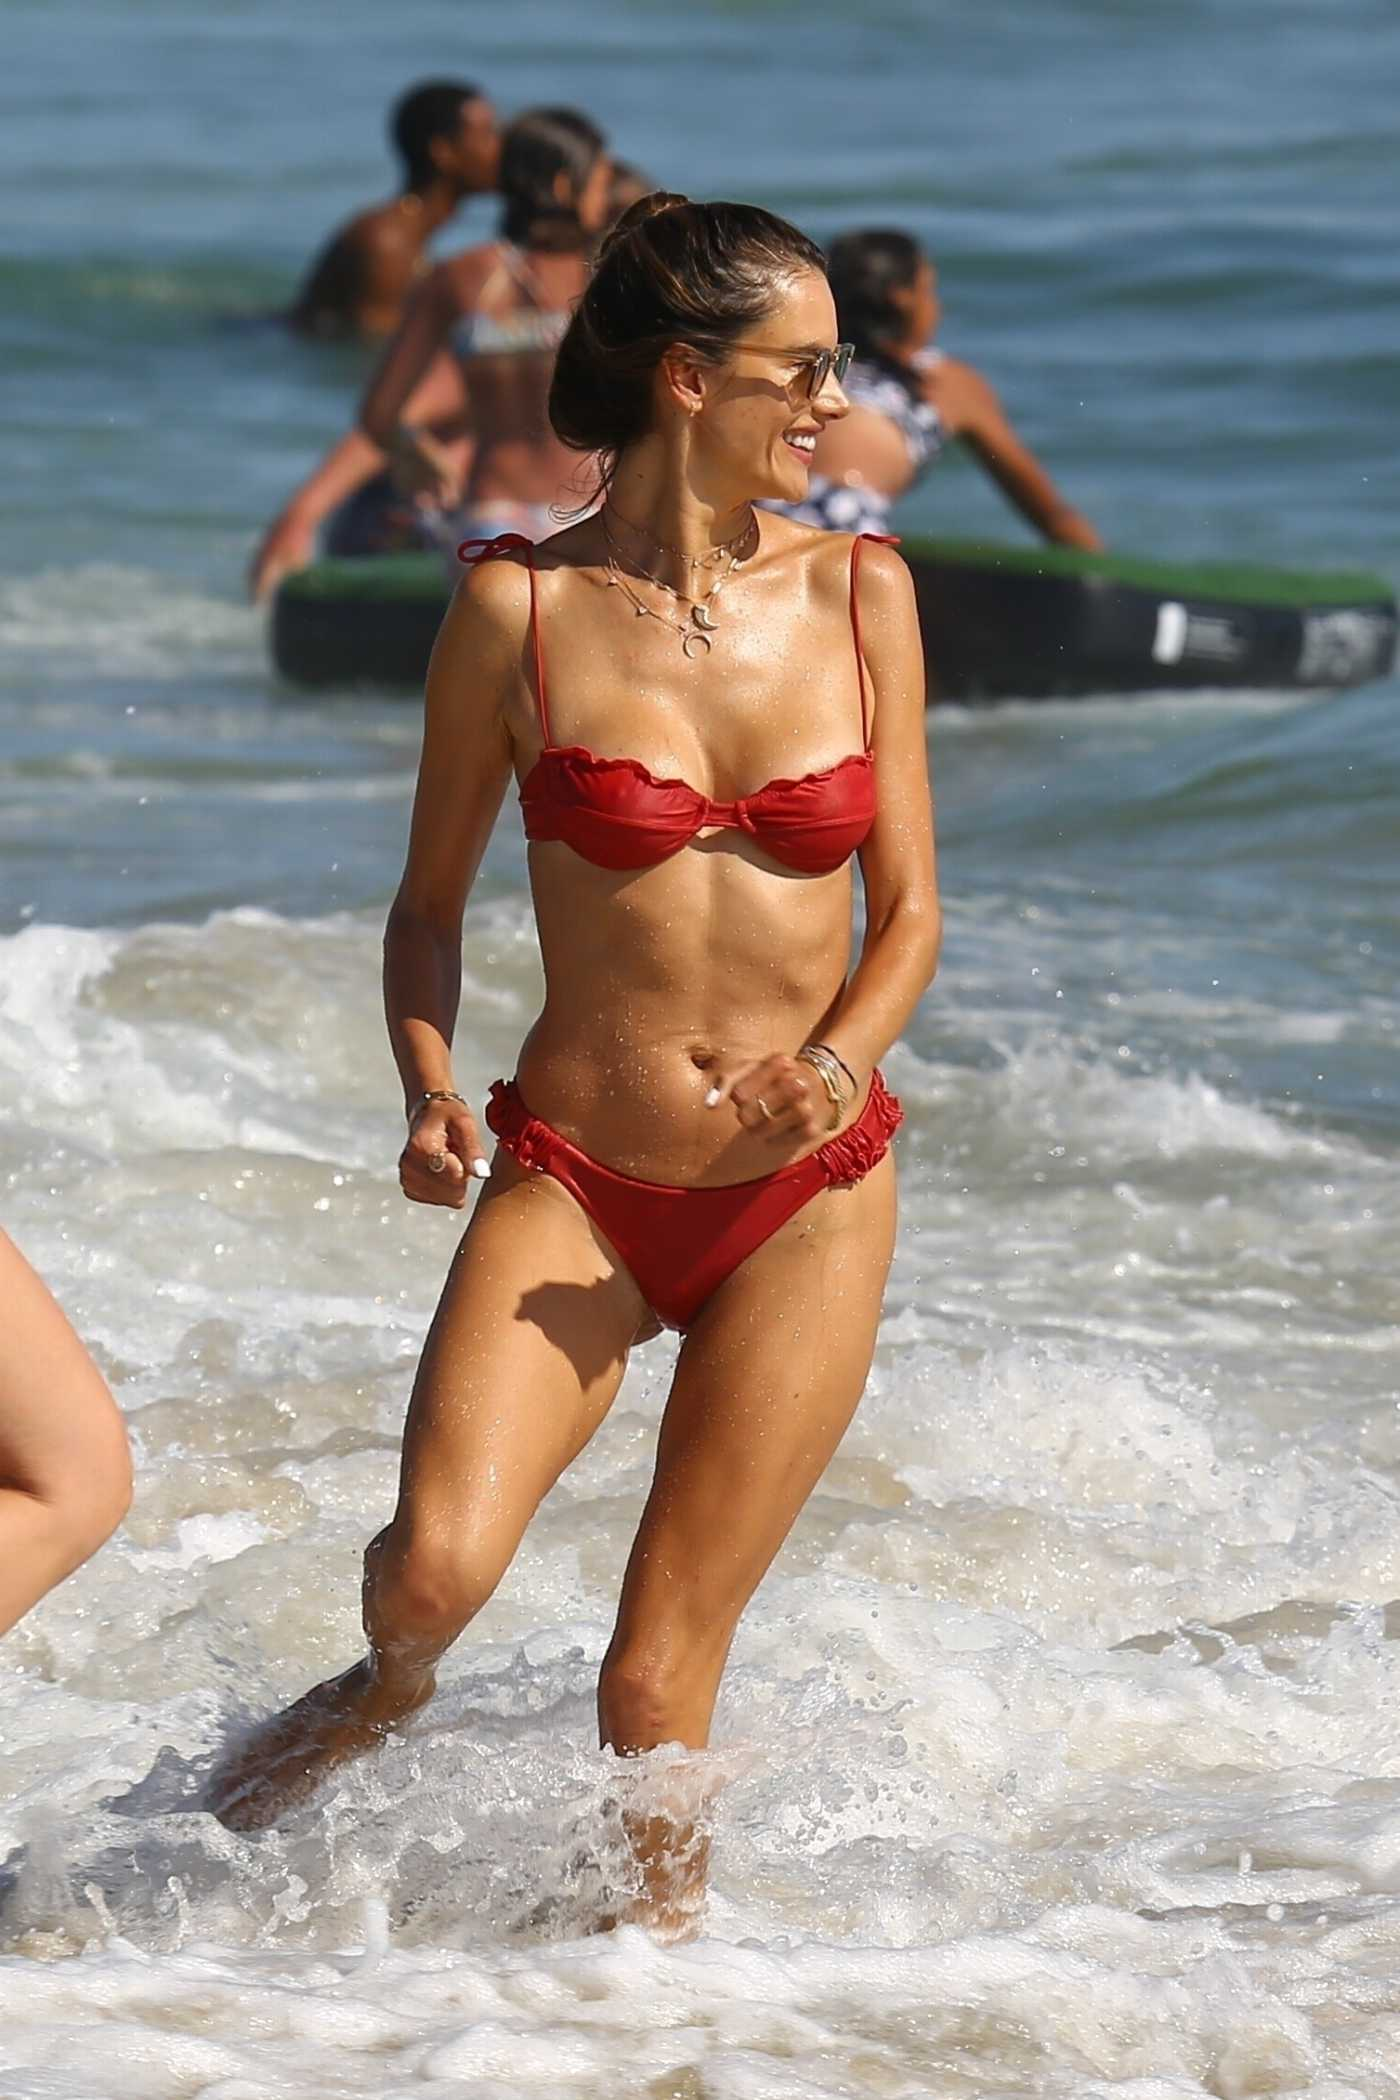 Alessandra Ambrosio in a Red Bikini on the Beach in Los Angeles 07/11/2020